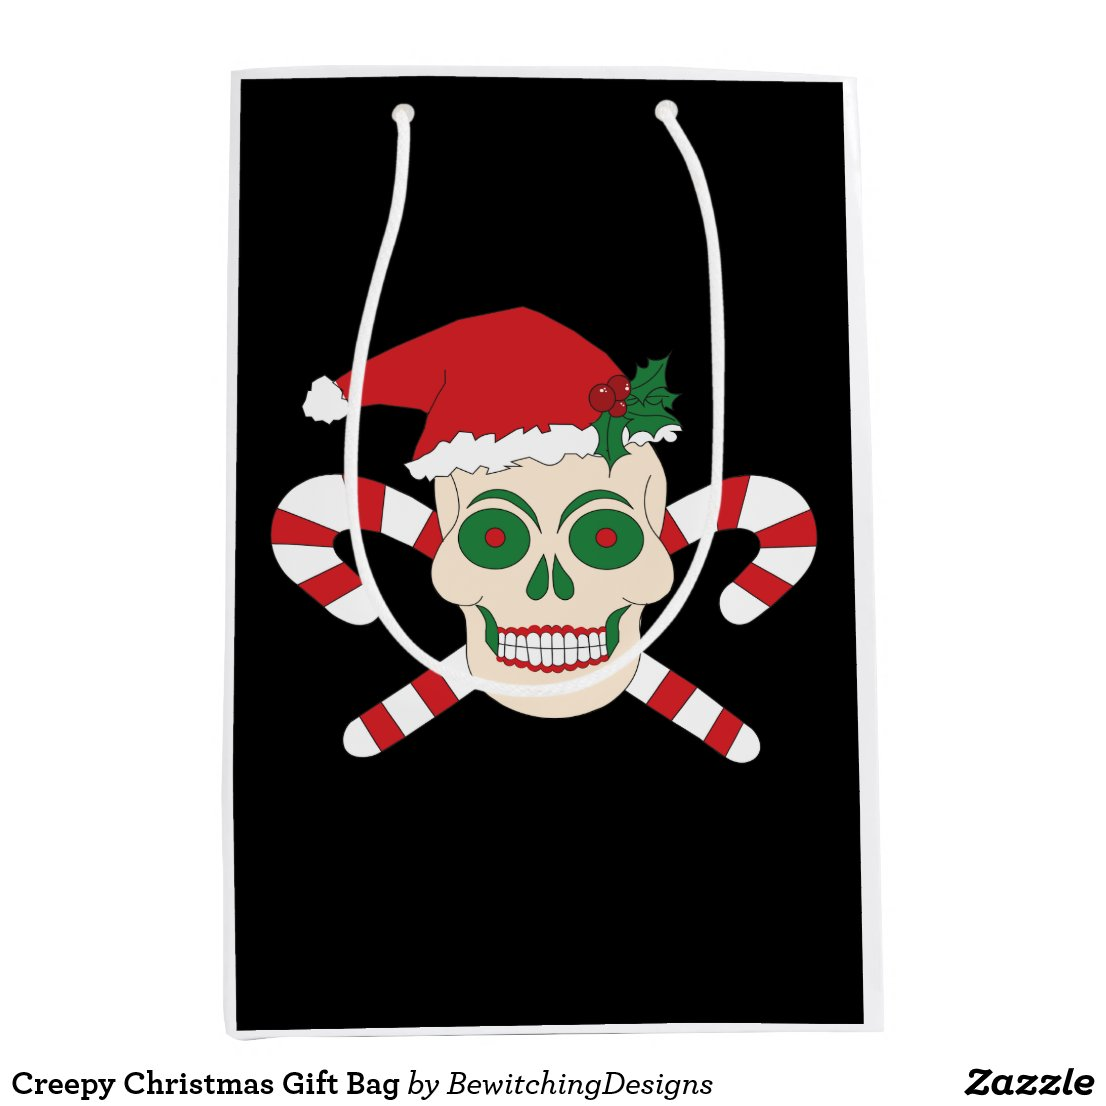 Creepy Christmas Gift Bag